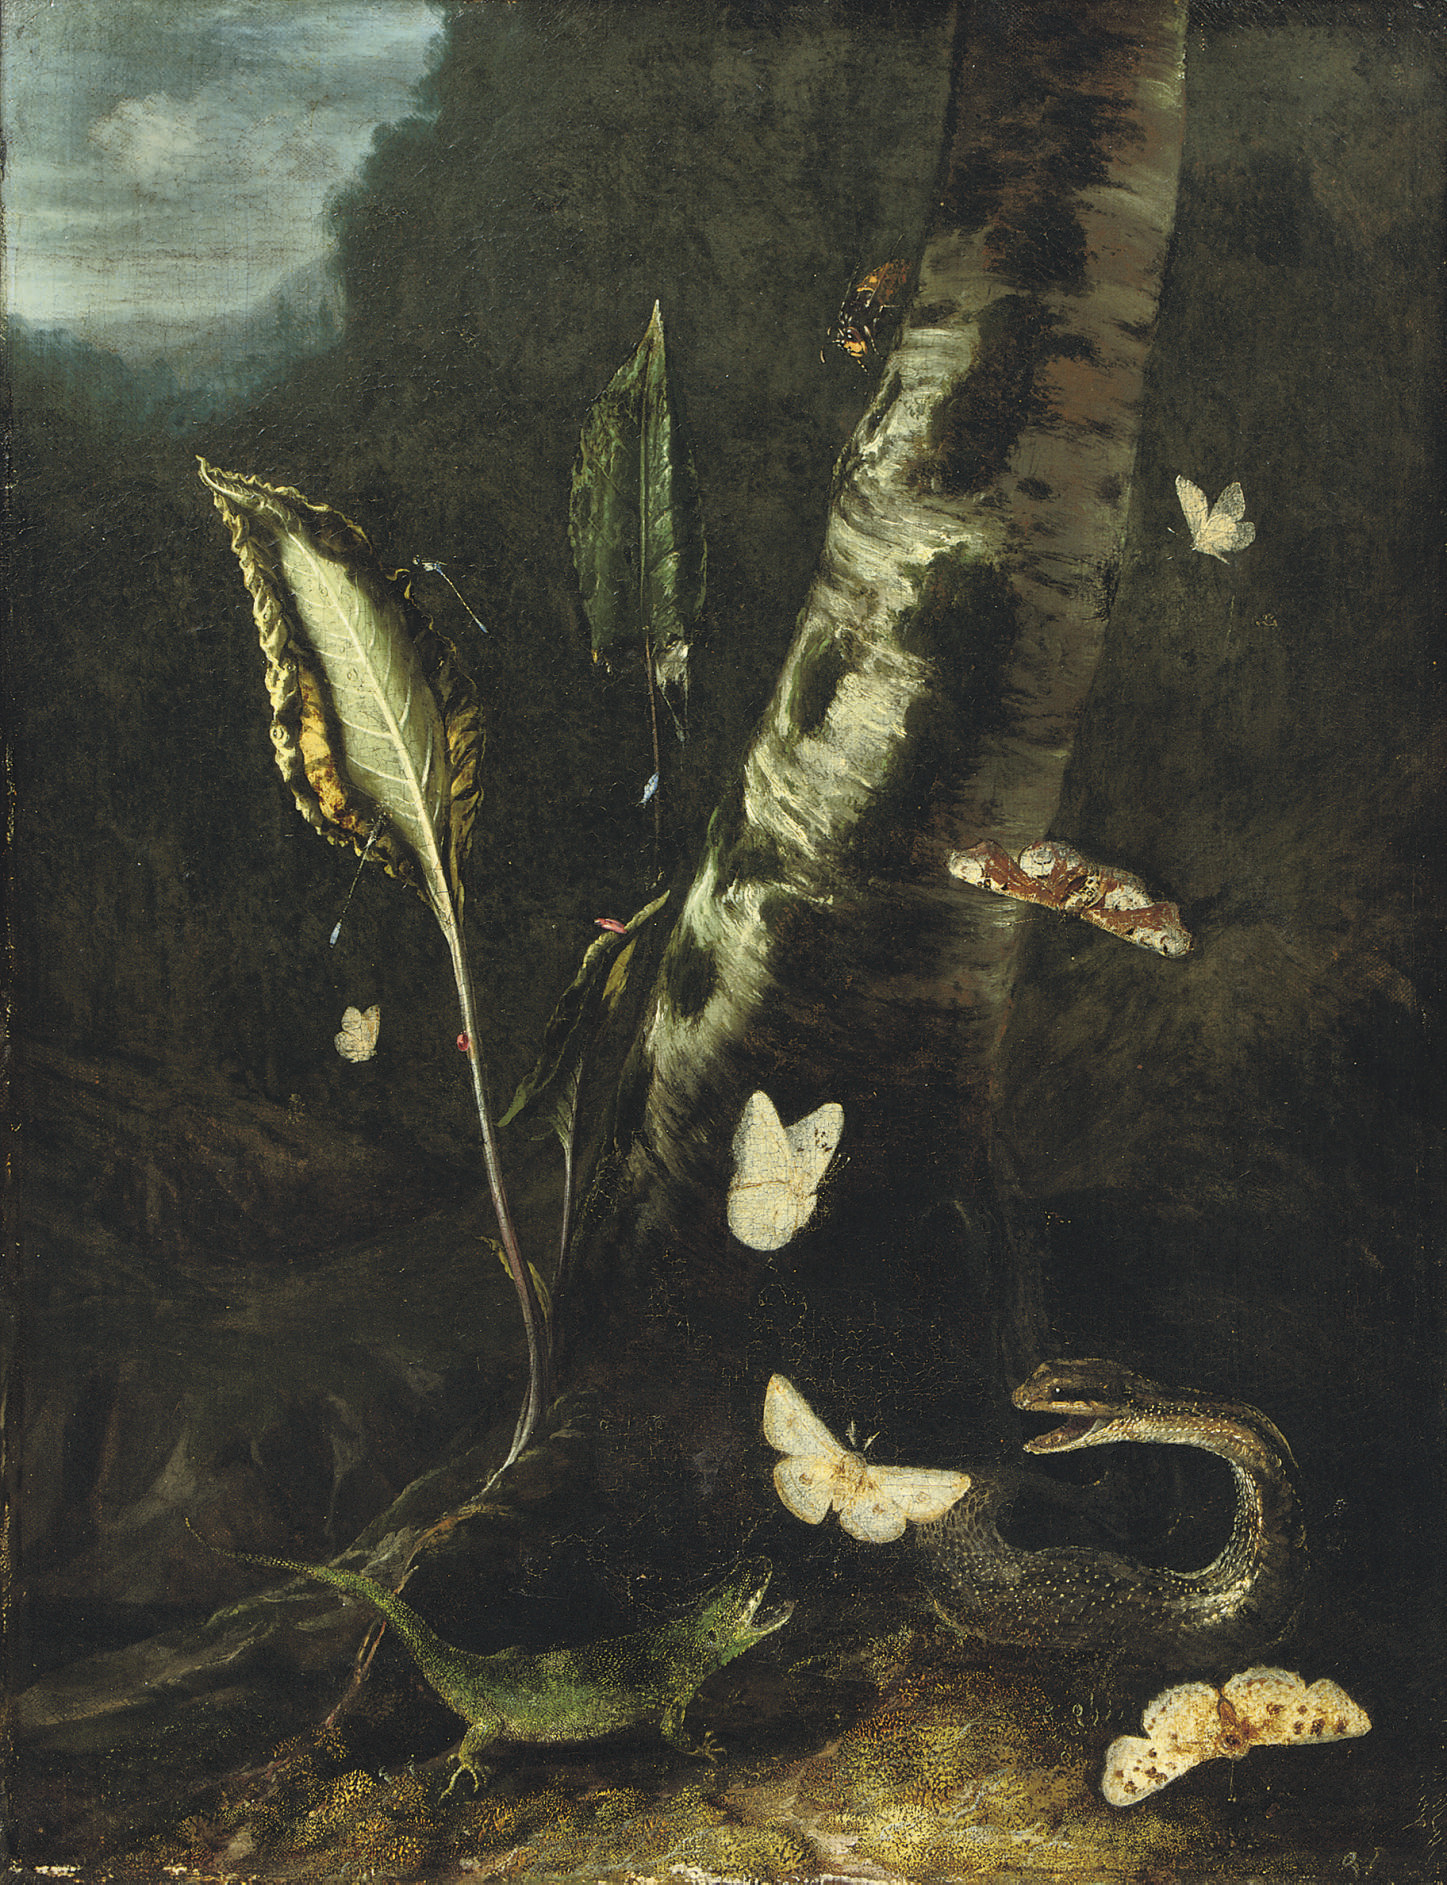 A forest floor with a lizard, a snake and butterflies